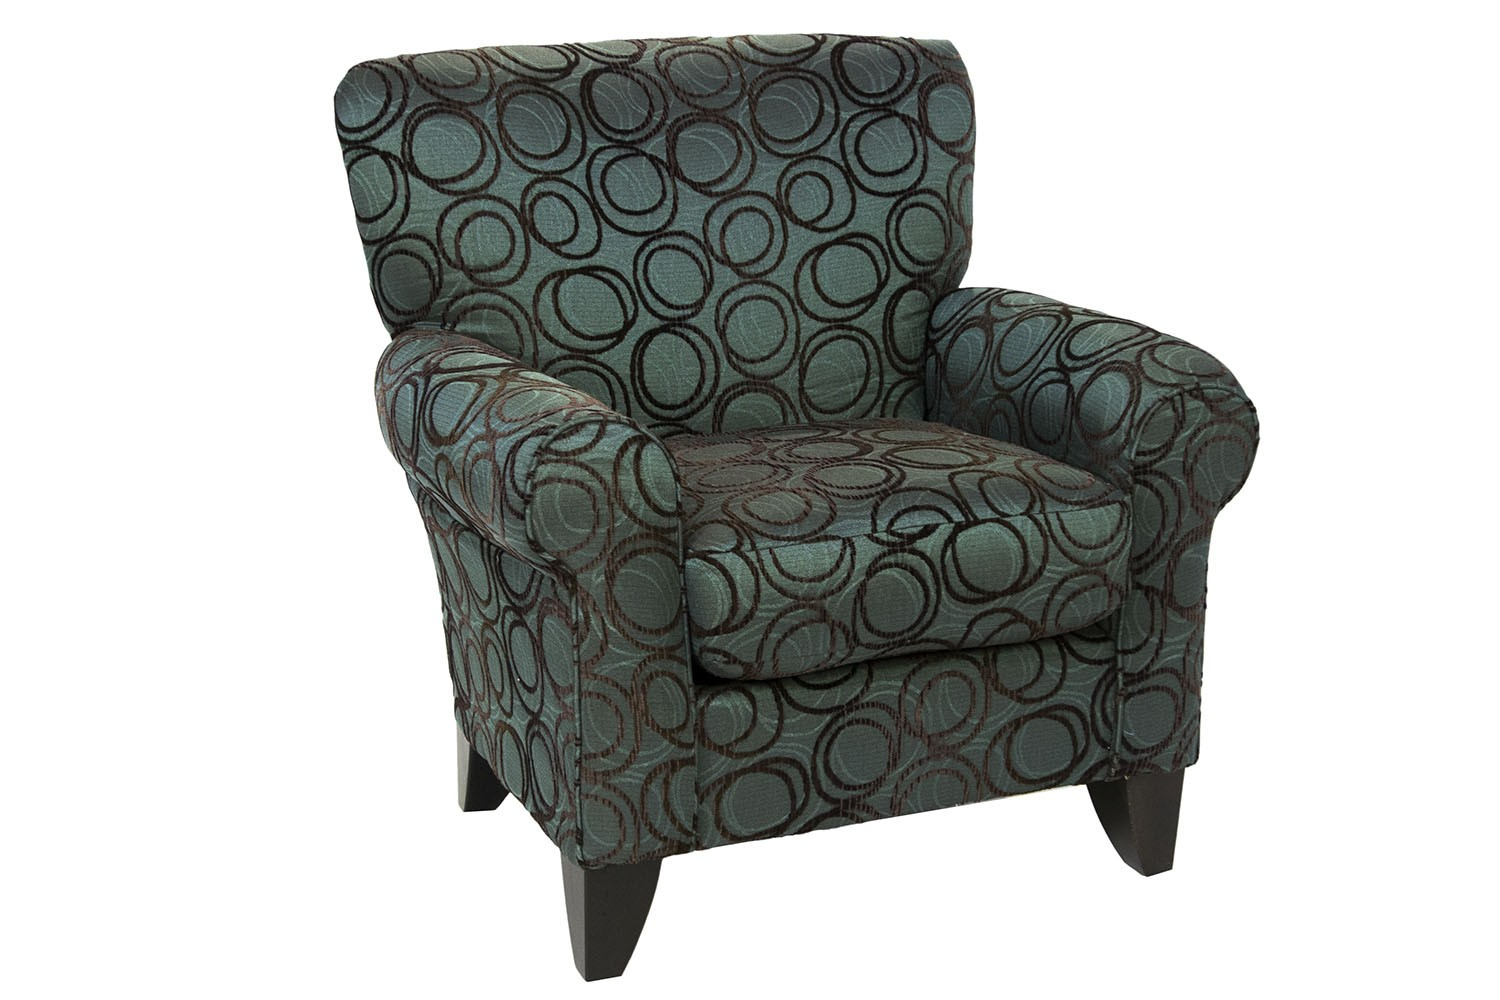 accent chairs mor furniture for less anza chair piece and table set napa chocolate grey bedside lamps target dressers bridal shower basket ideas wine rack end tables with storage